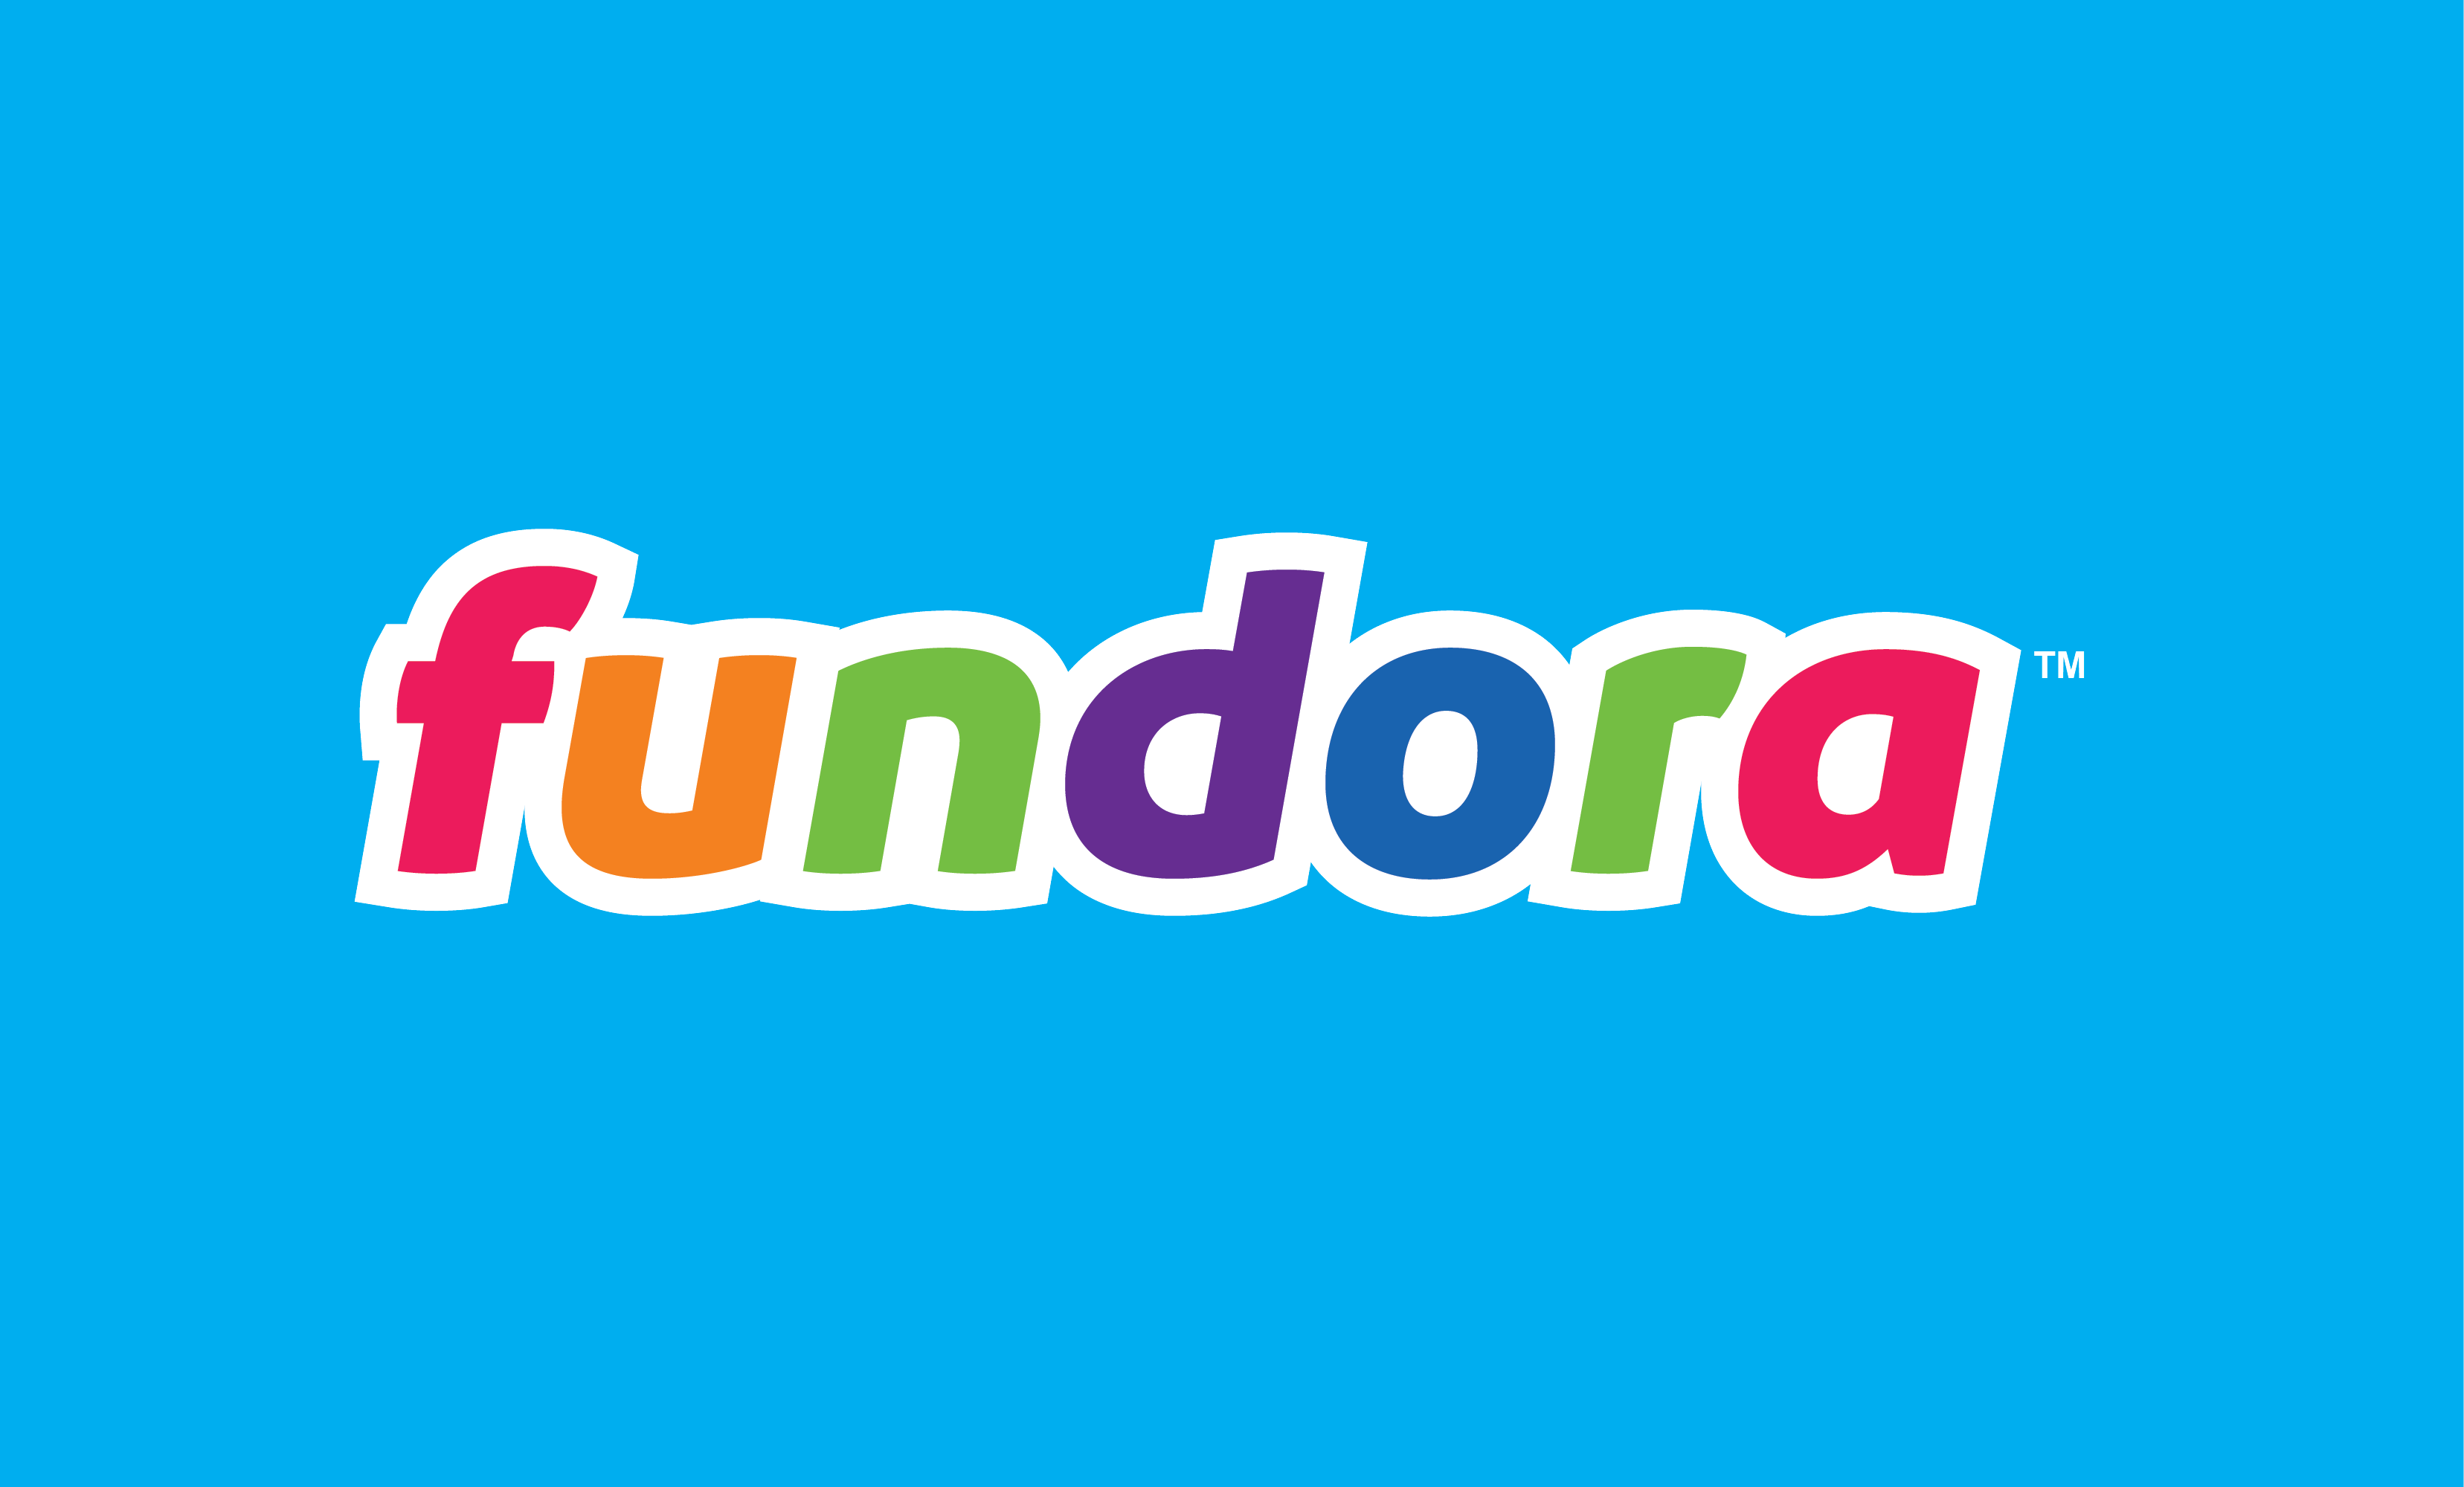 Image of Fundora Logo for business name Fundora, which can be used for a toy, gaming or entertainment startup with Fundora.com